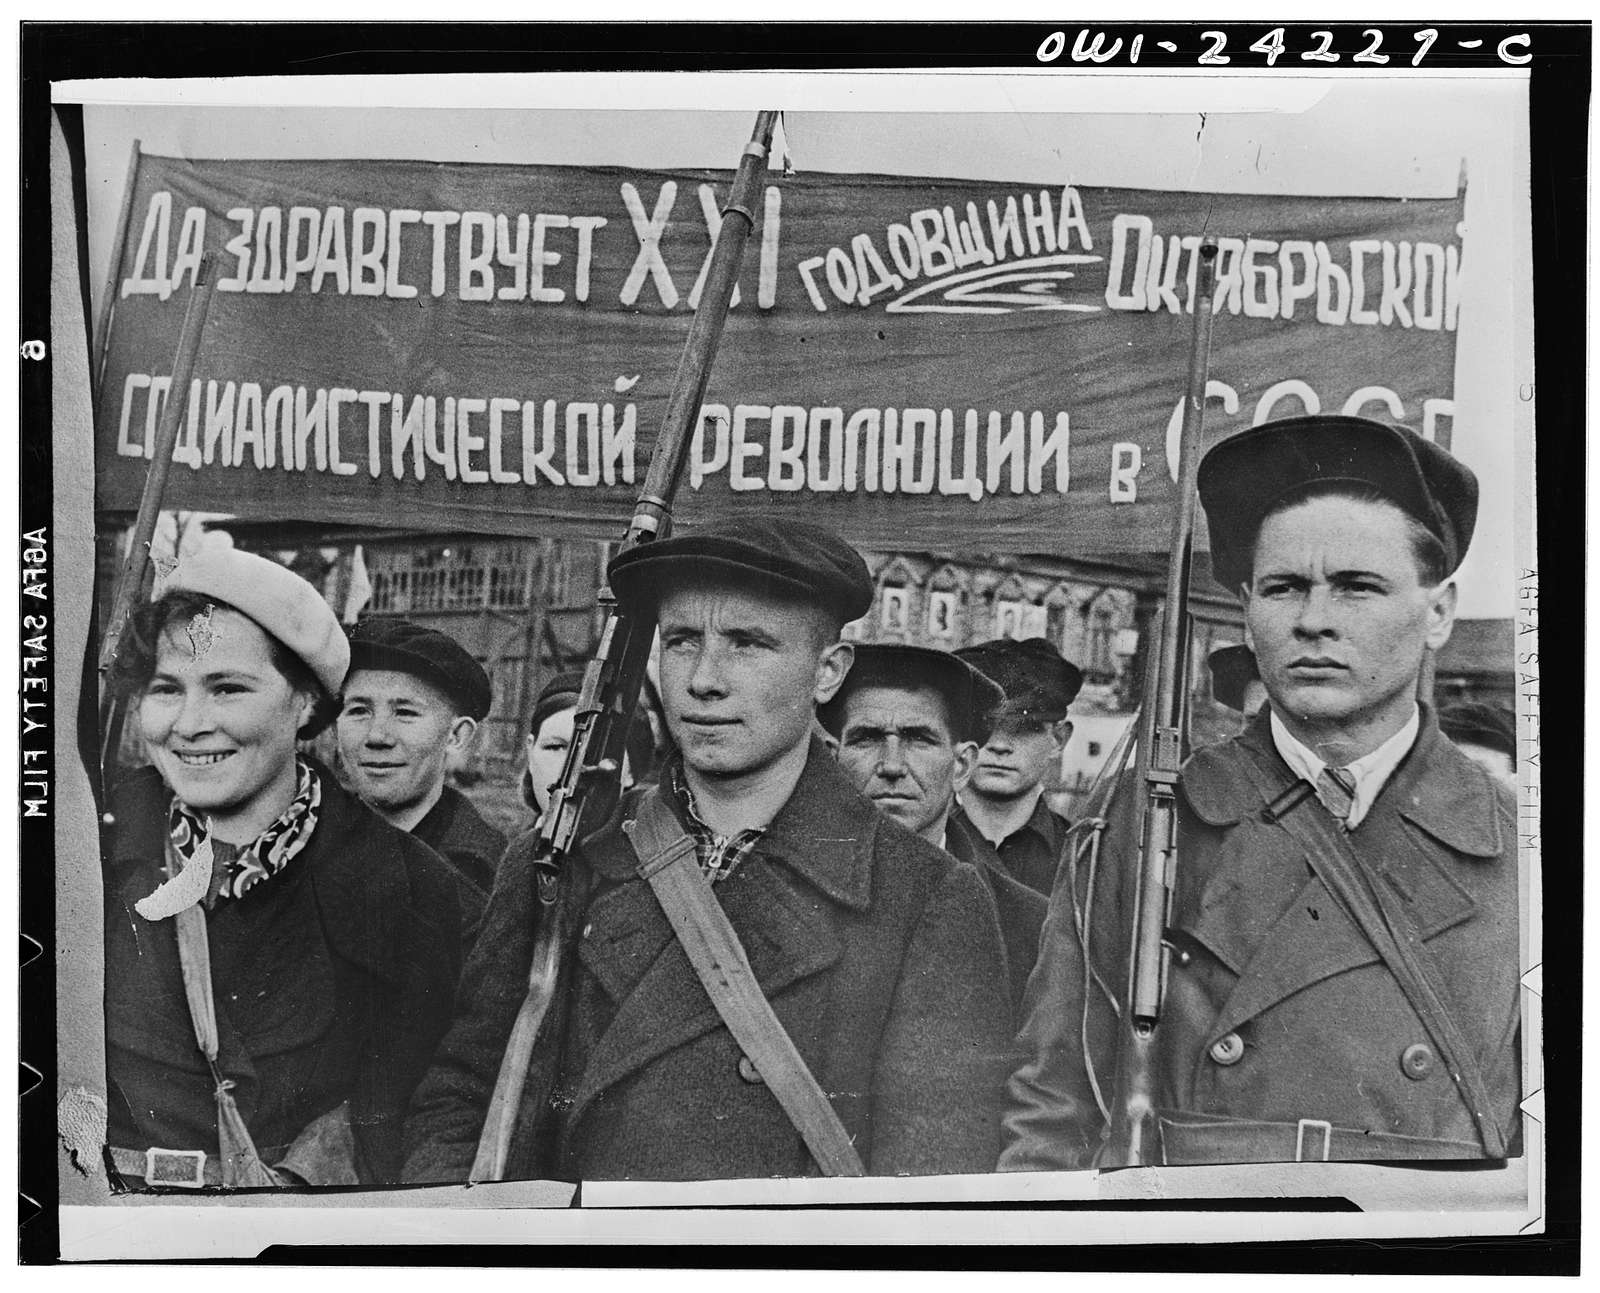 Factory workers drilling with guns in their free time in the USSR (Union of Soviet Socialist Republics)